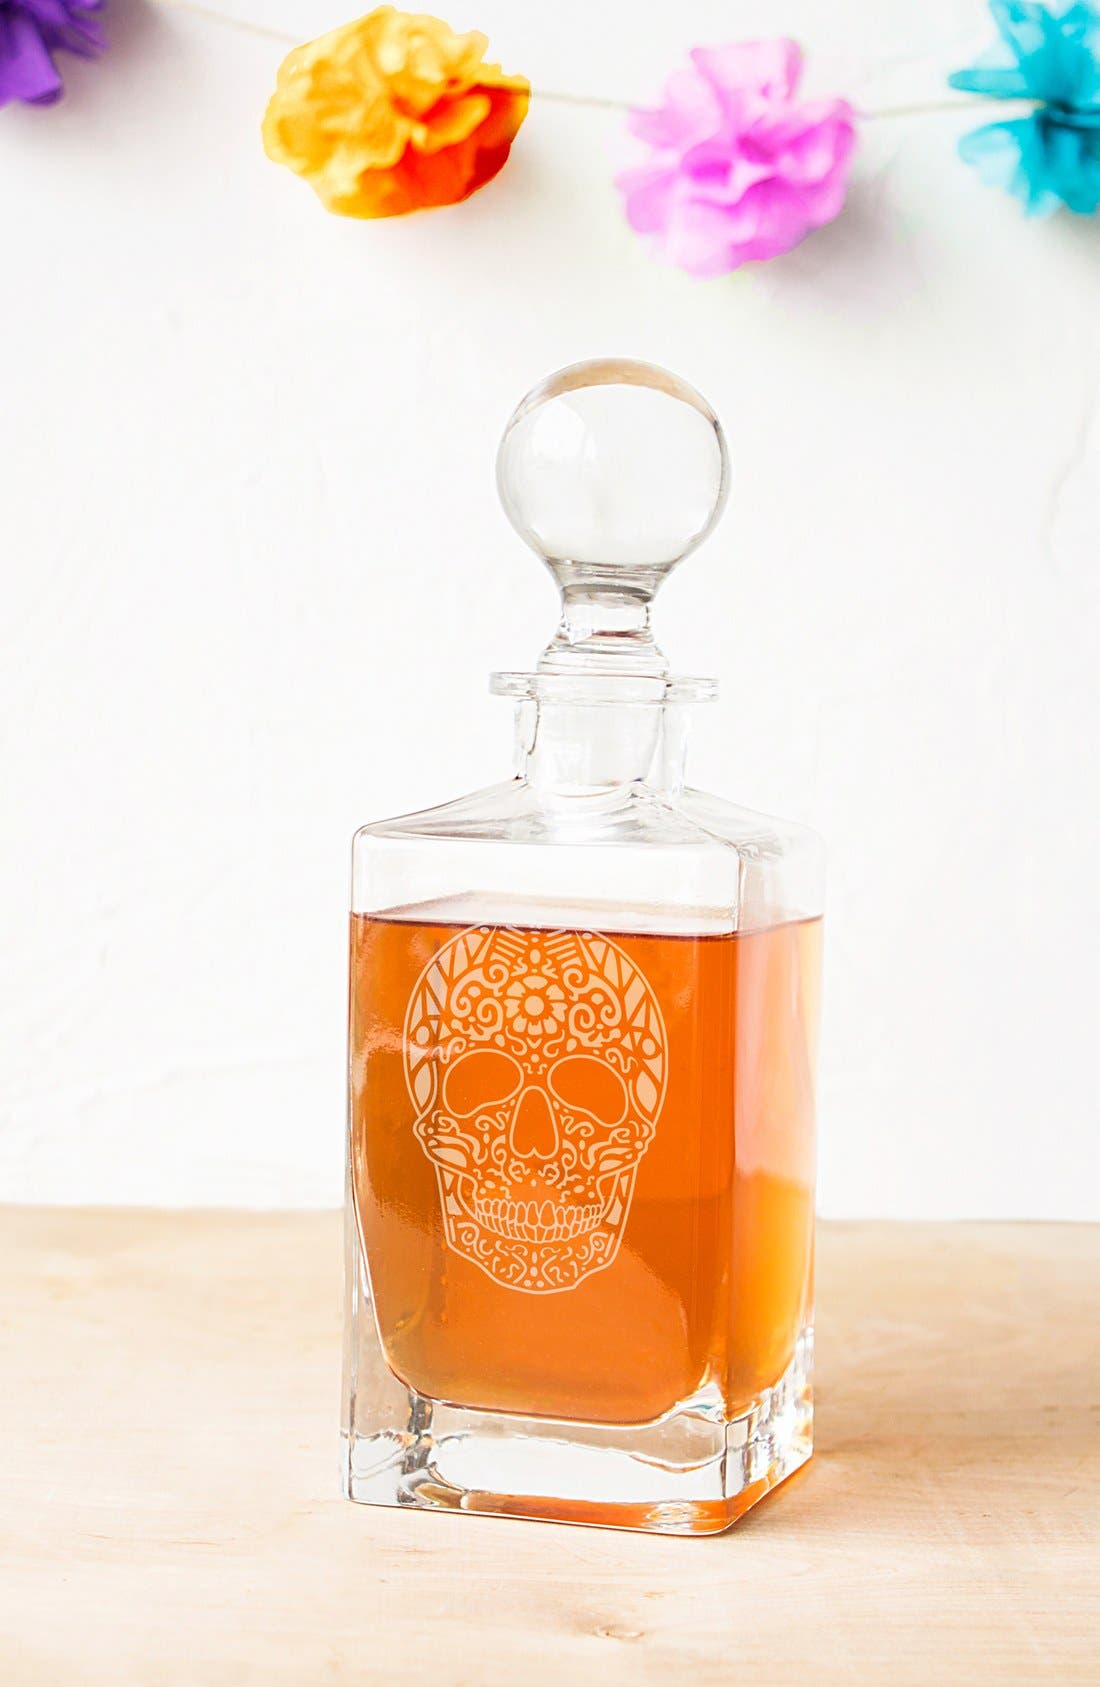 Alternate Image 1 Selected - Cathy's Concepts 'Sugar Skull' Glass Decanter